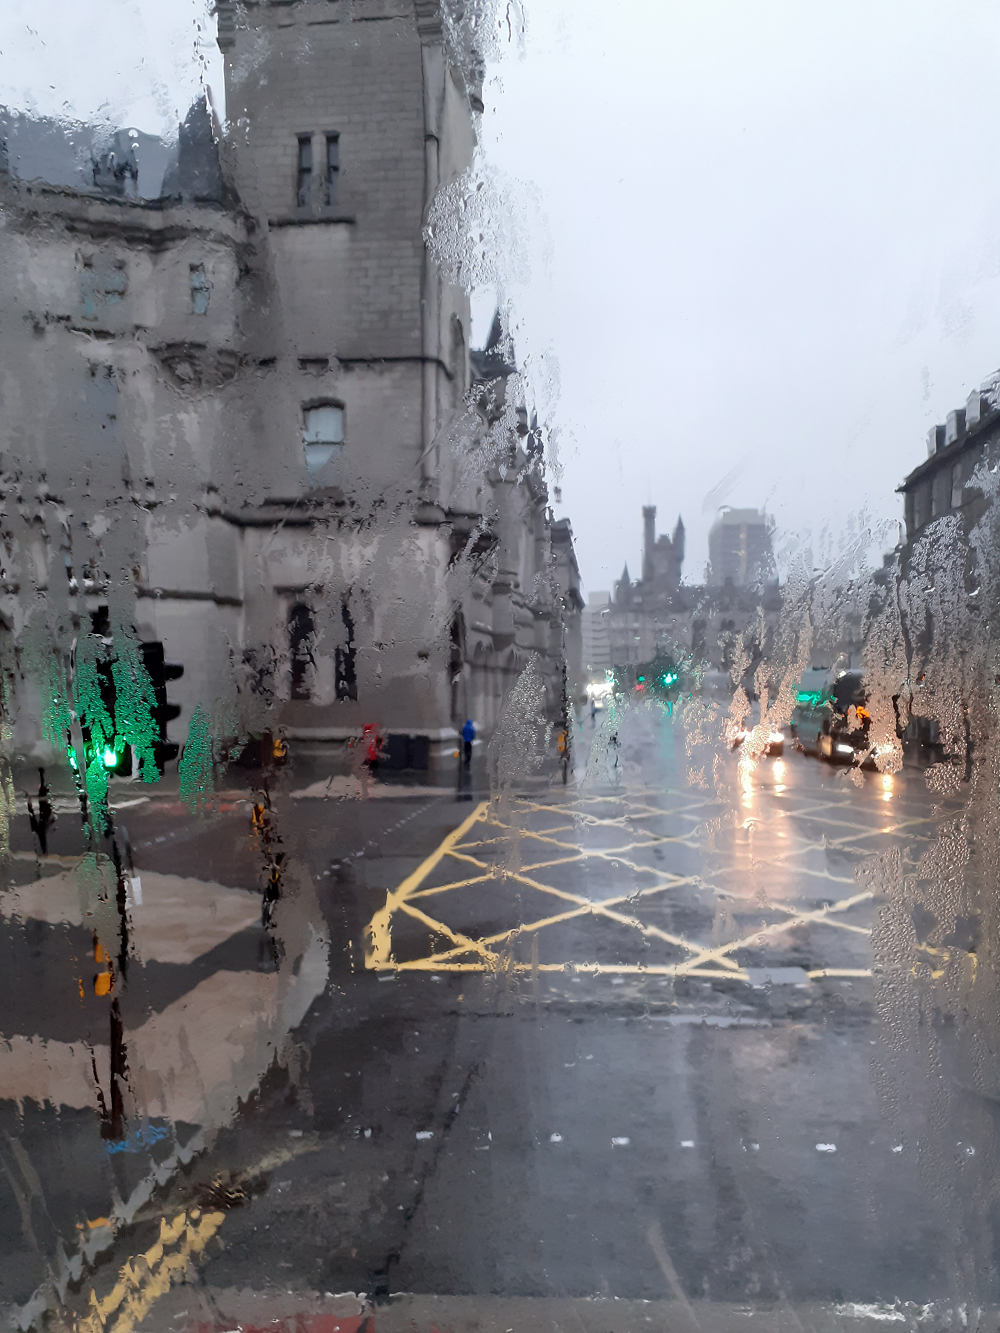 Aberdeen from a bus window on a rainy day